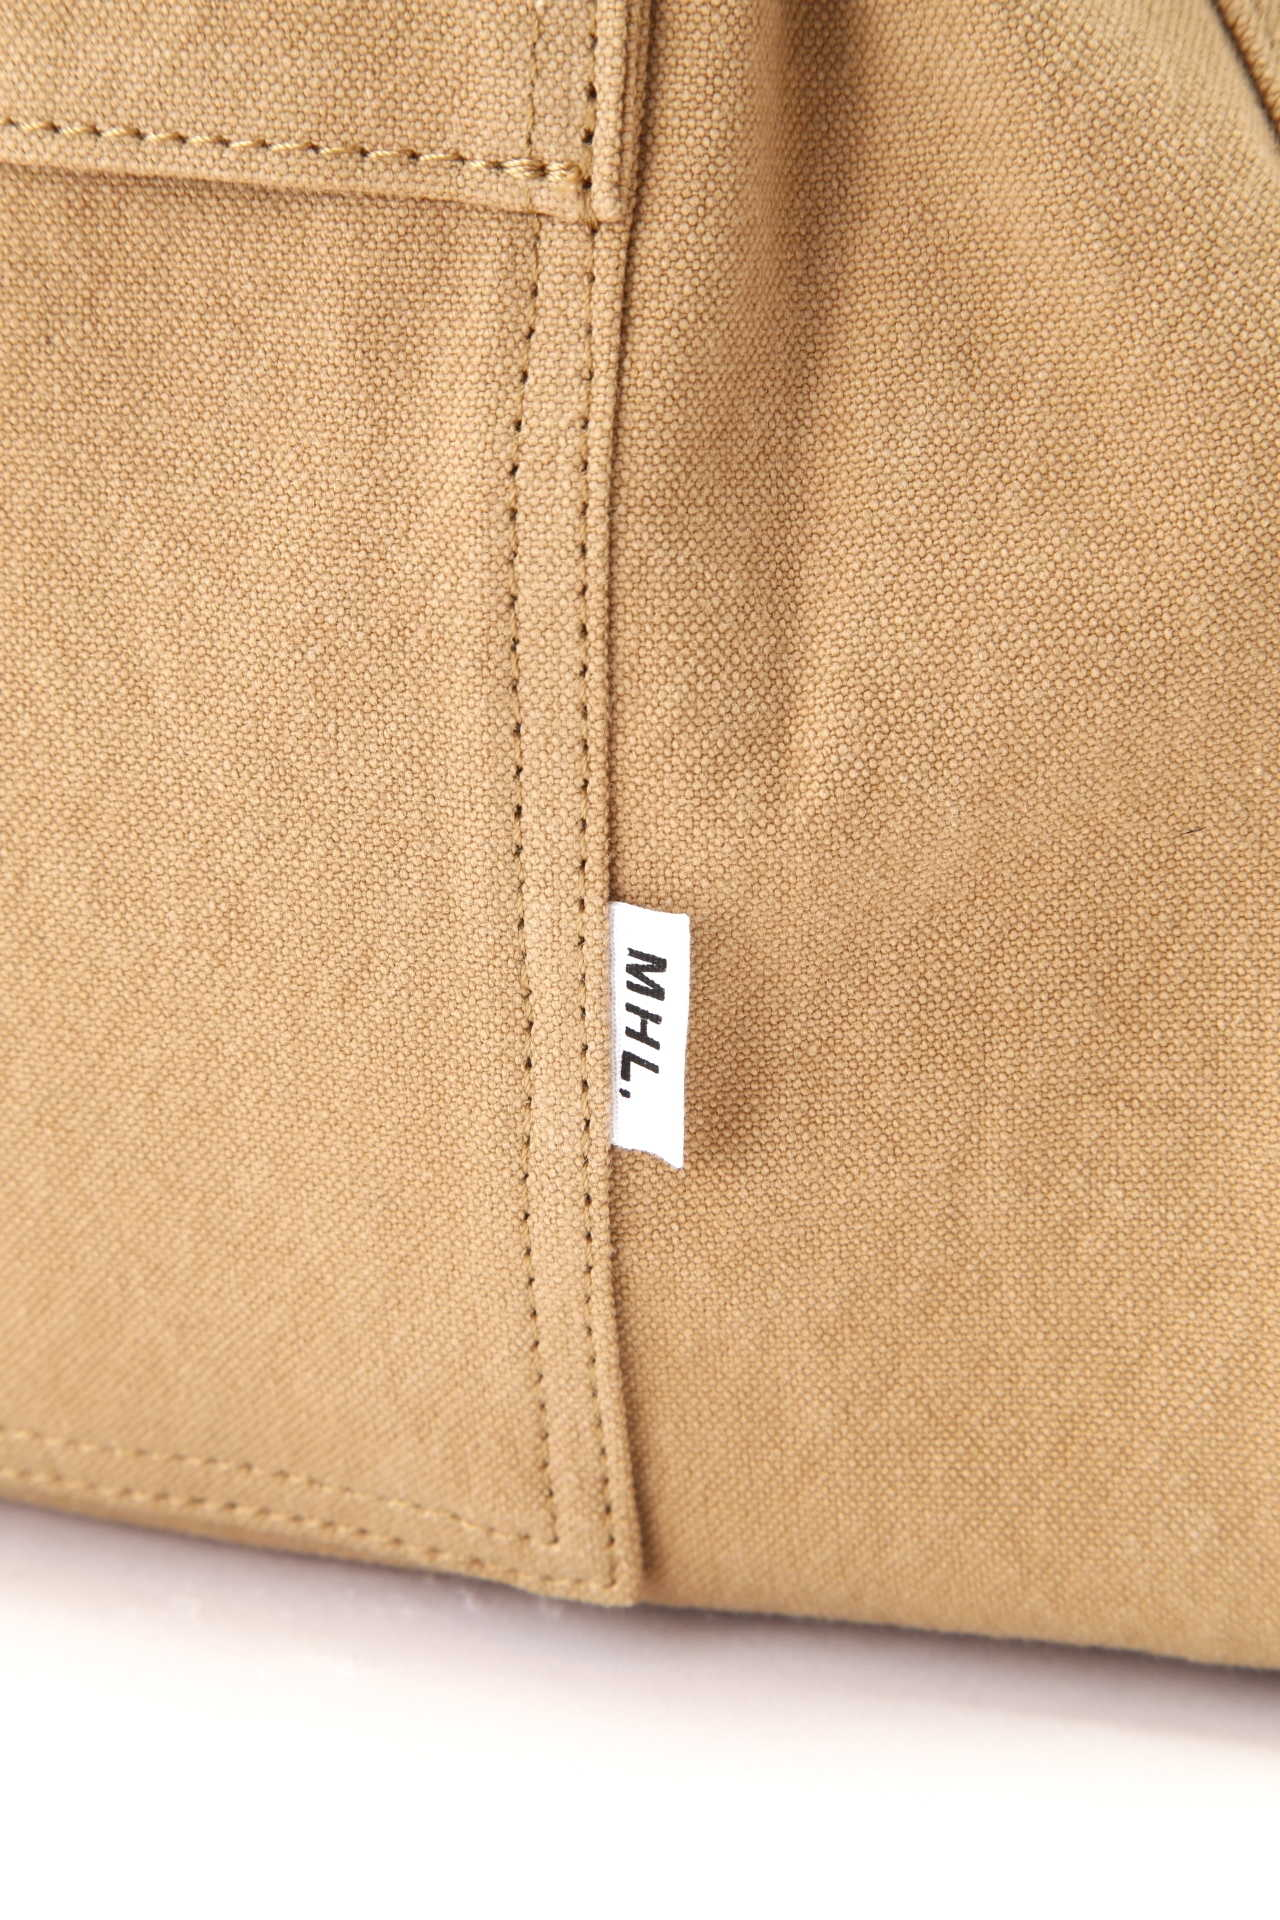 WASHED COTTON CANVAS(MHL SHOP限定)6